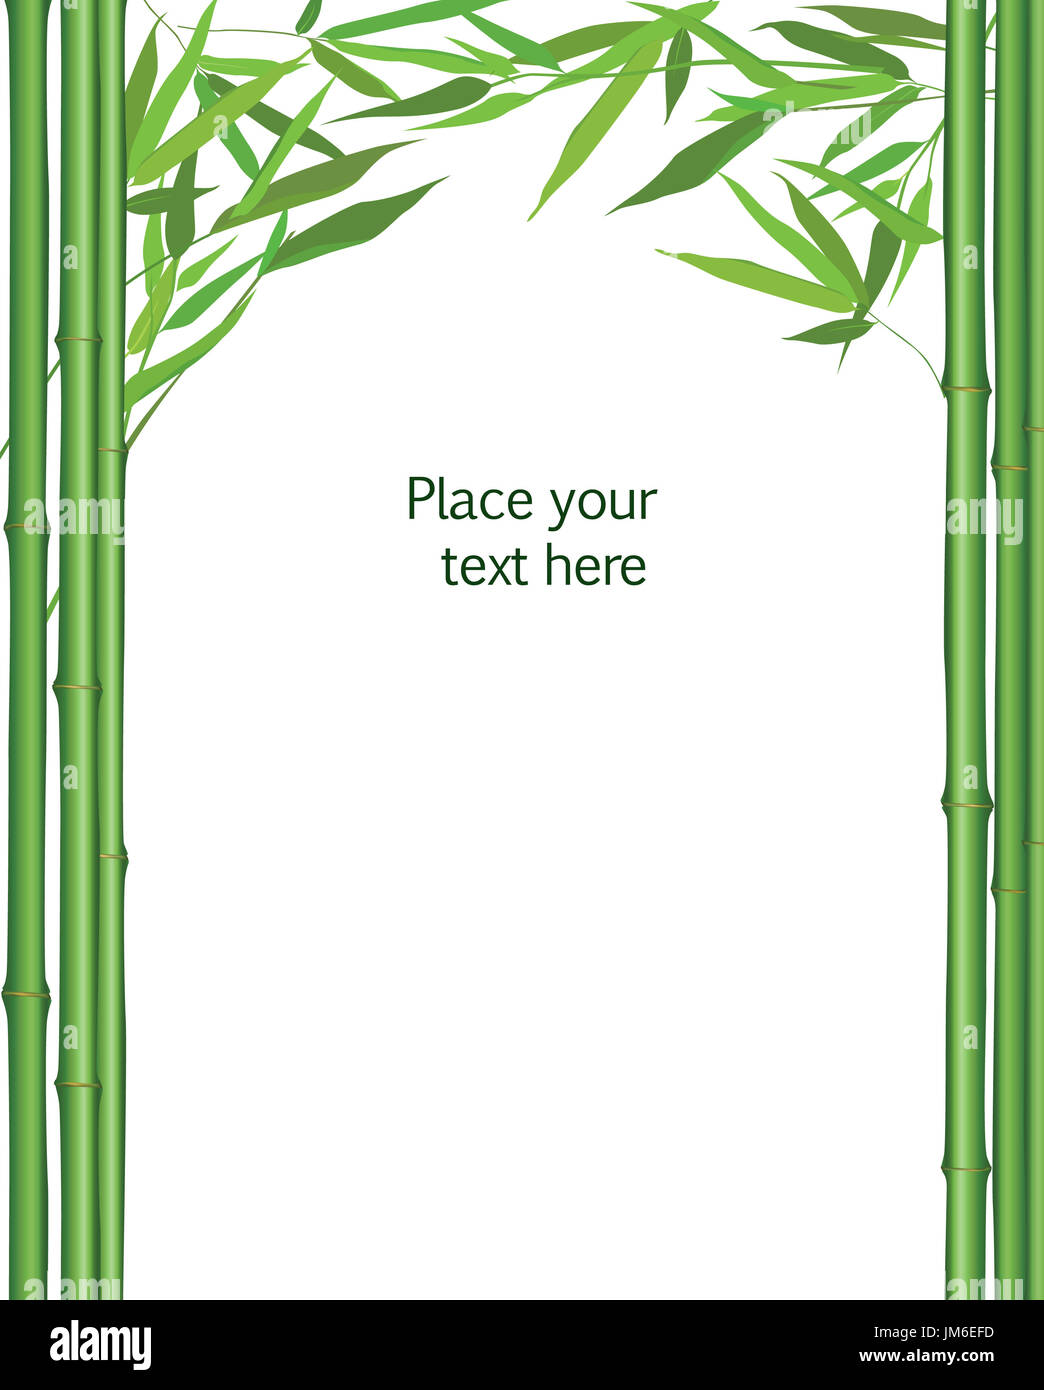 Floral background Summer outdoor wallpaper Nature spring frame